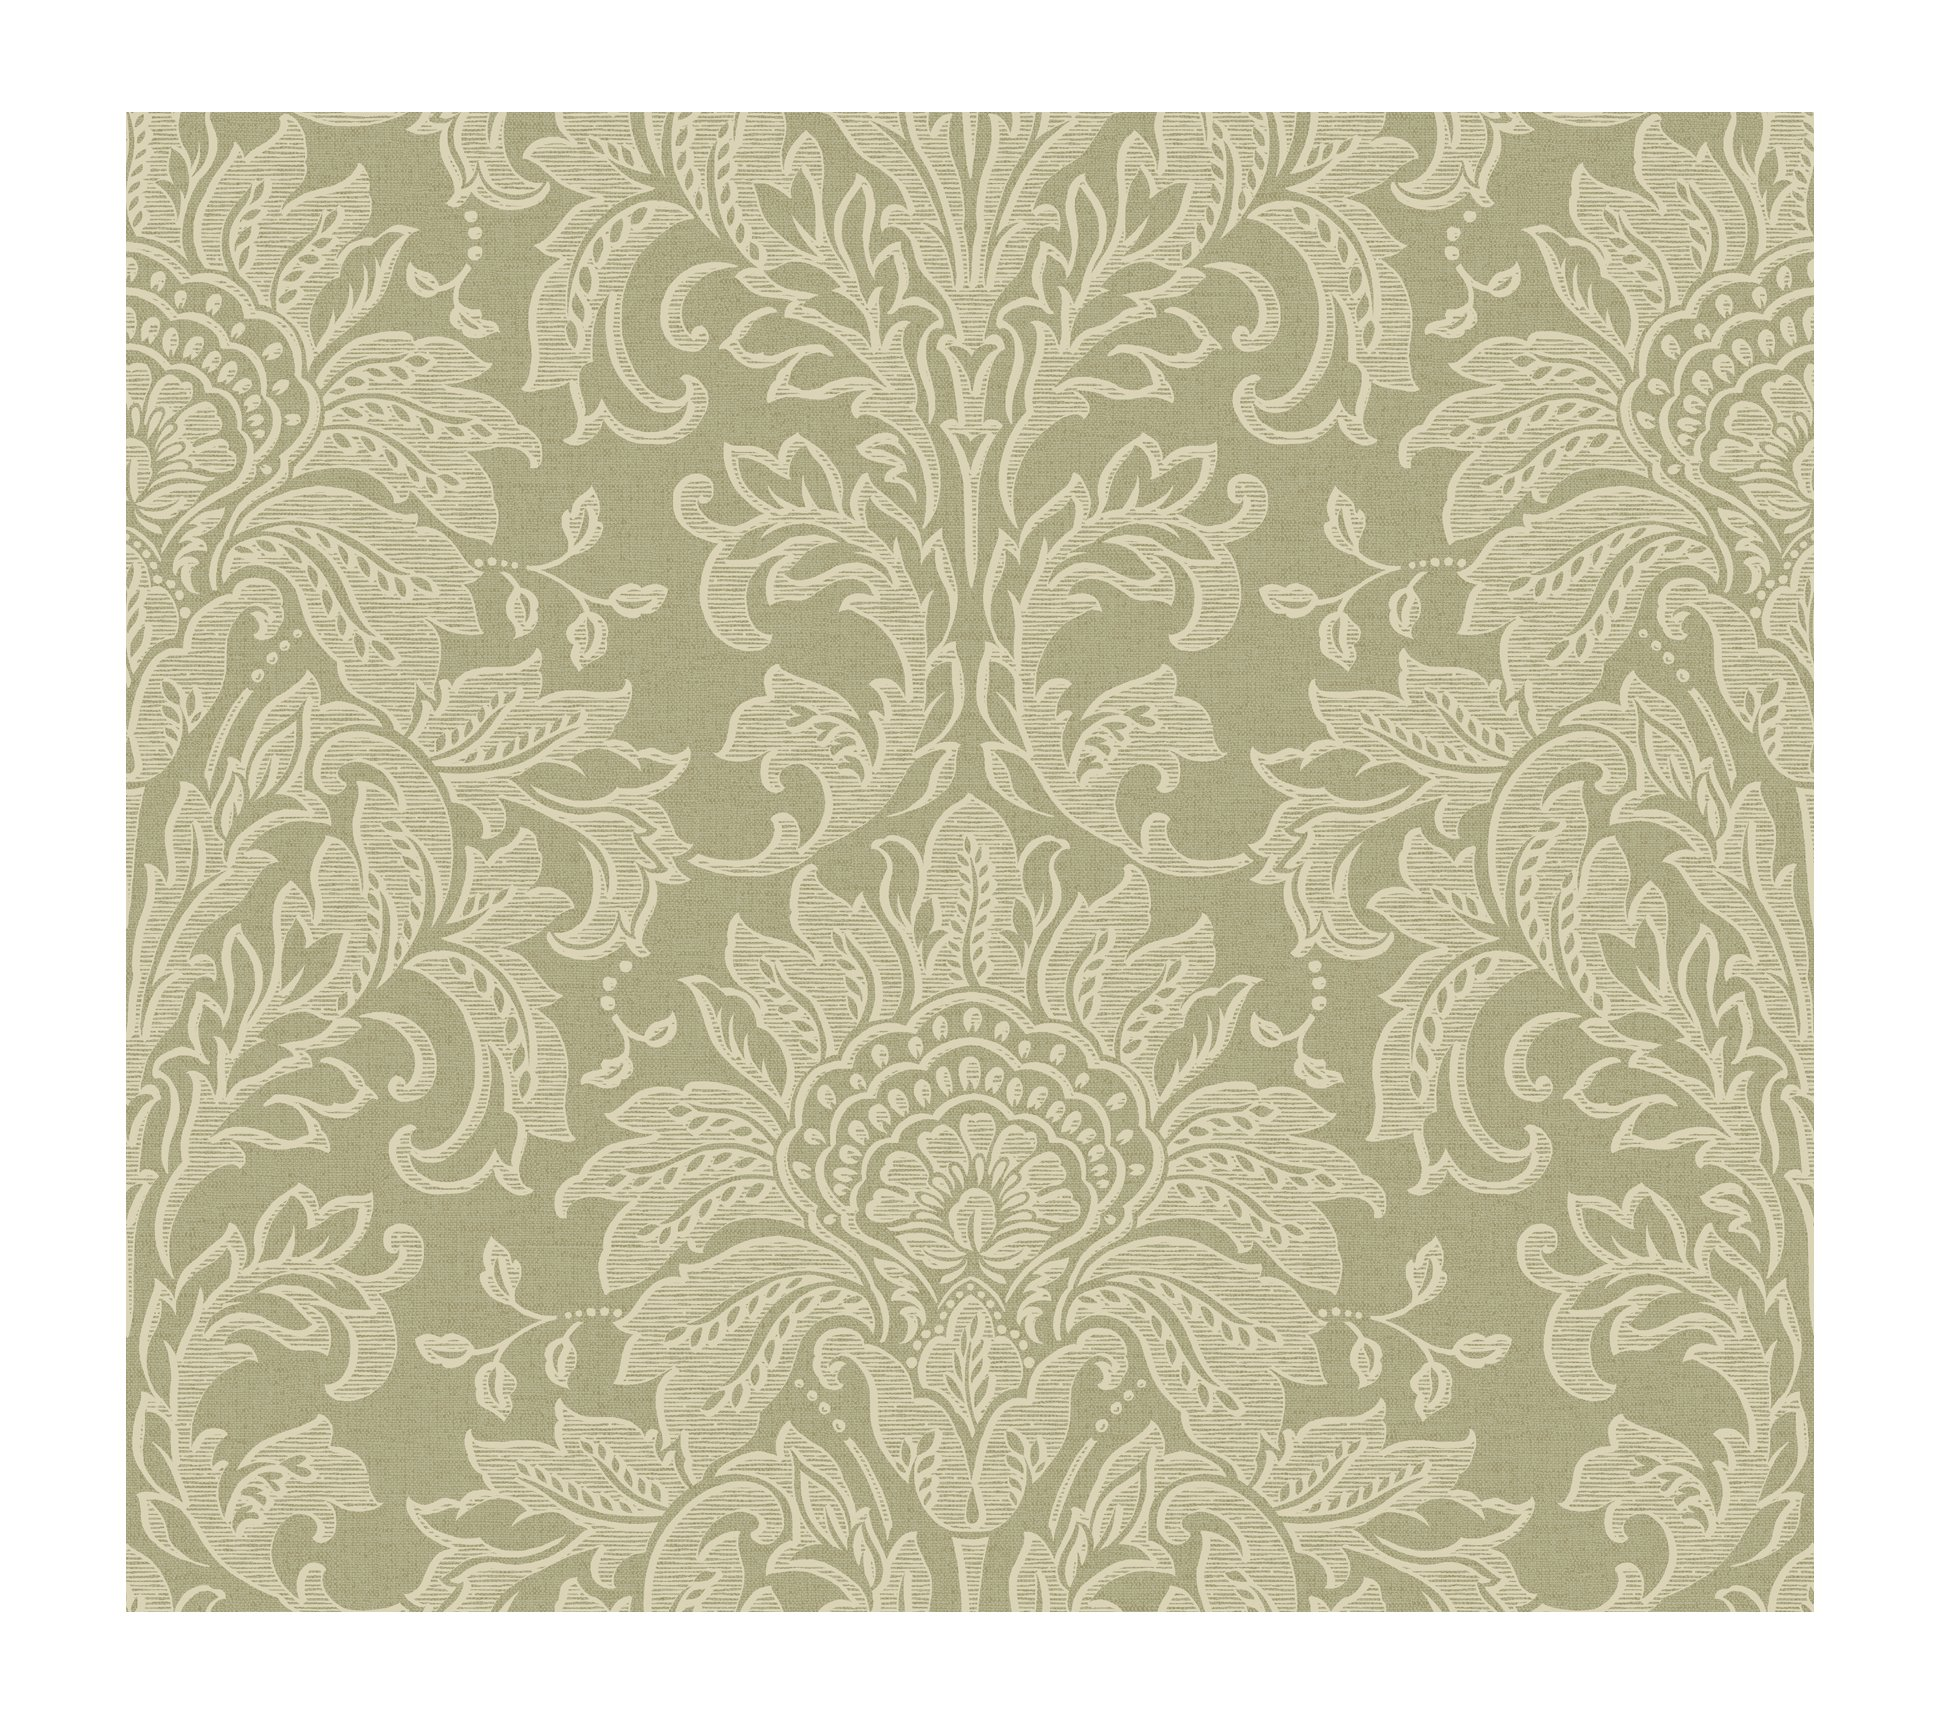 York Wallcoverings GL4611SMP Brandywine Damask 8-Inch x 10-Inch Wallpaper Memo Sample, Spa Green/Bronze/Cool Cream by York Wallcoverings